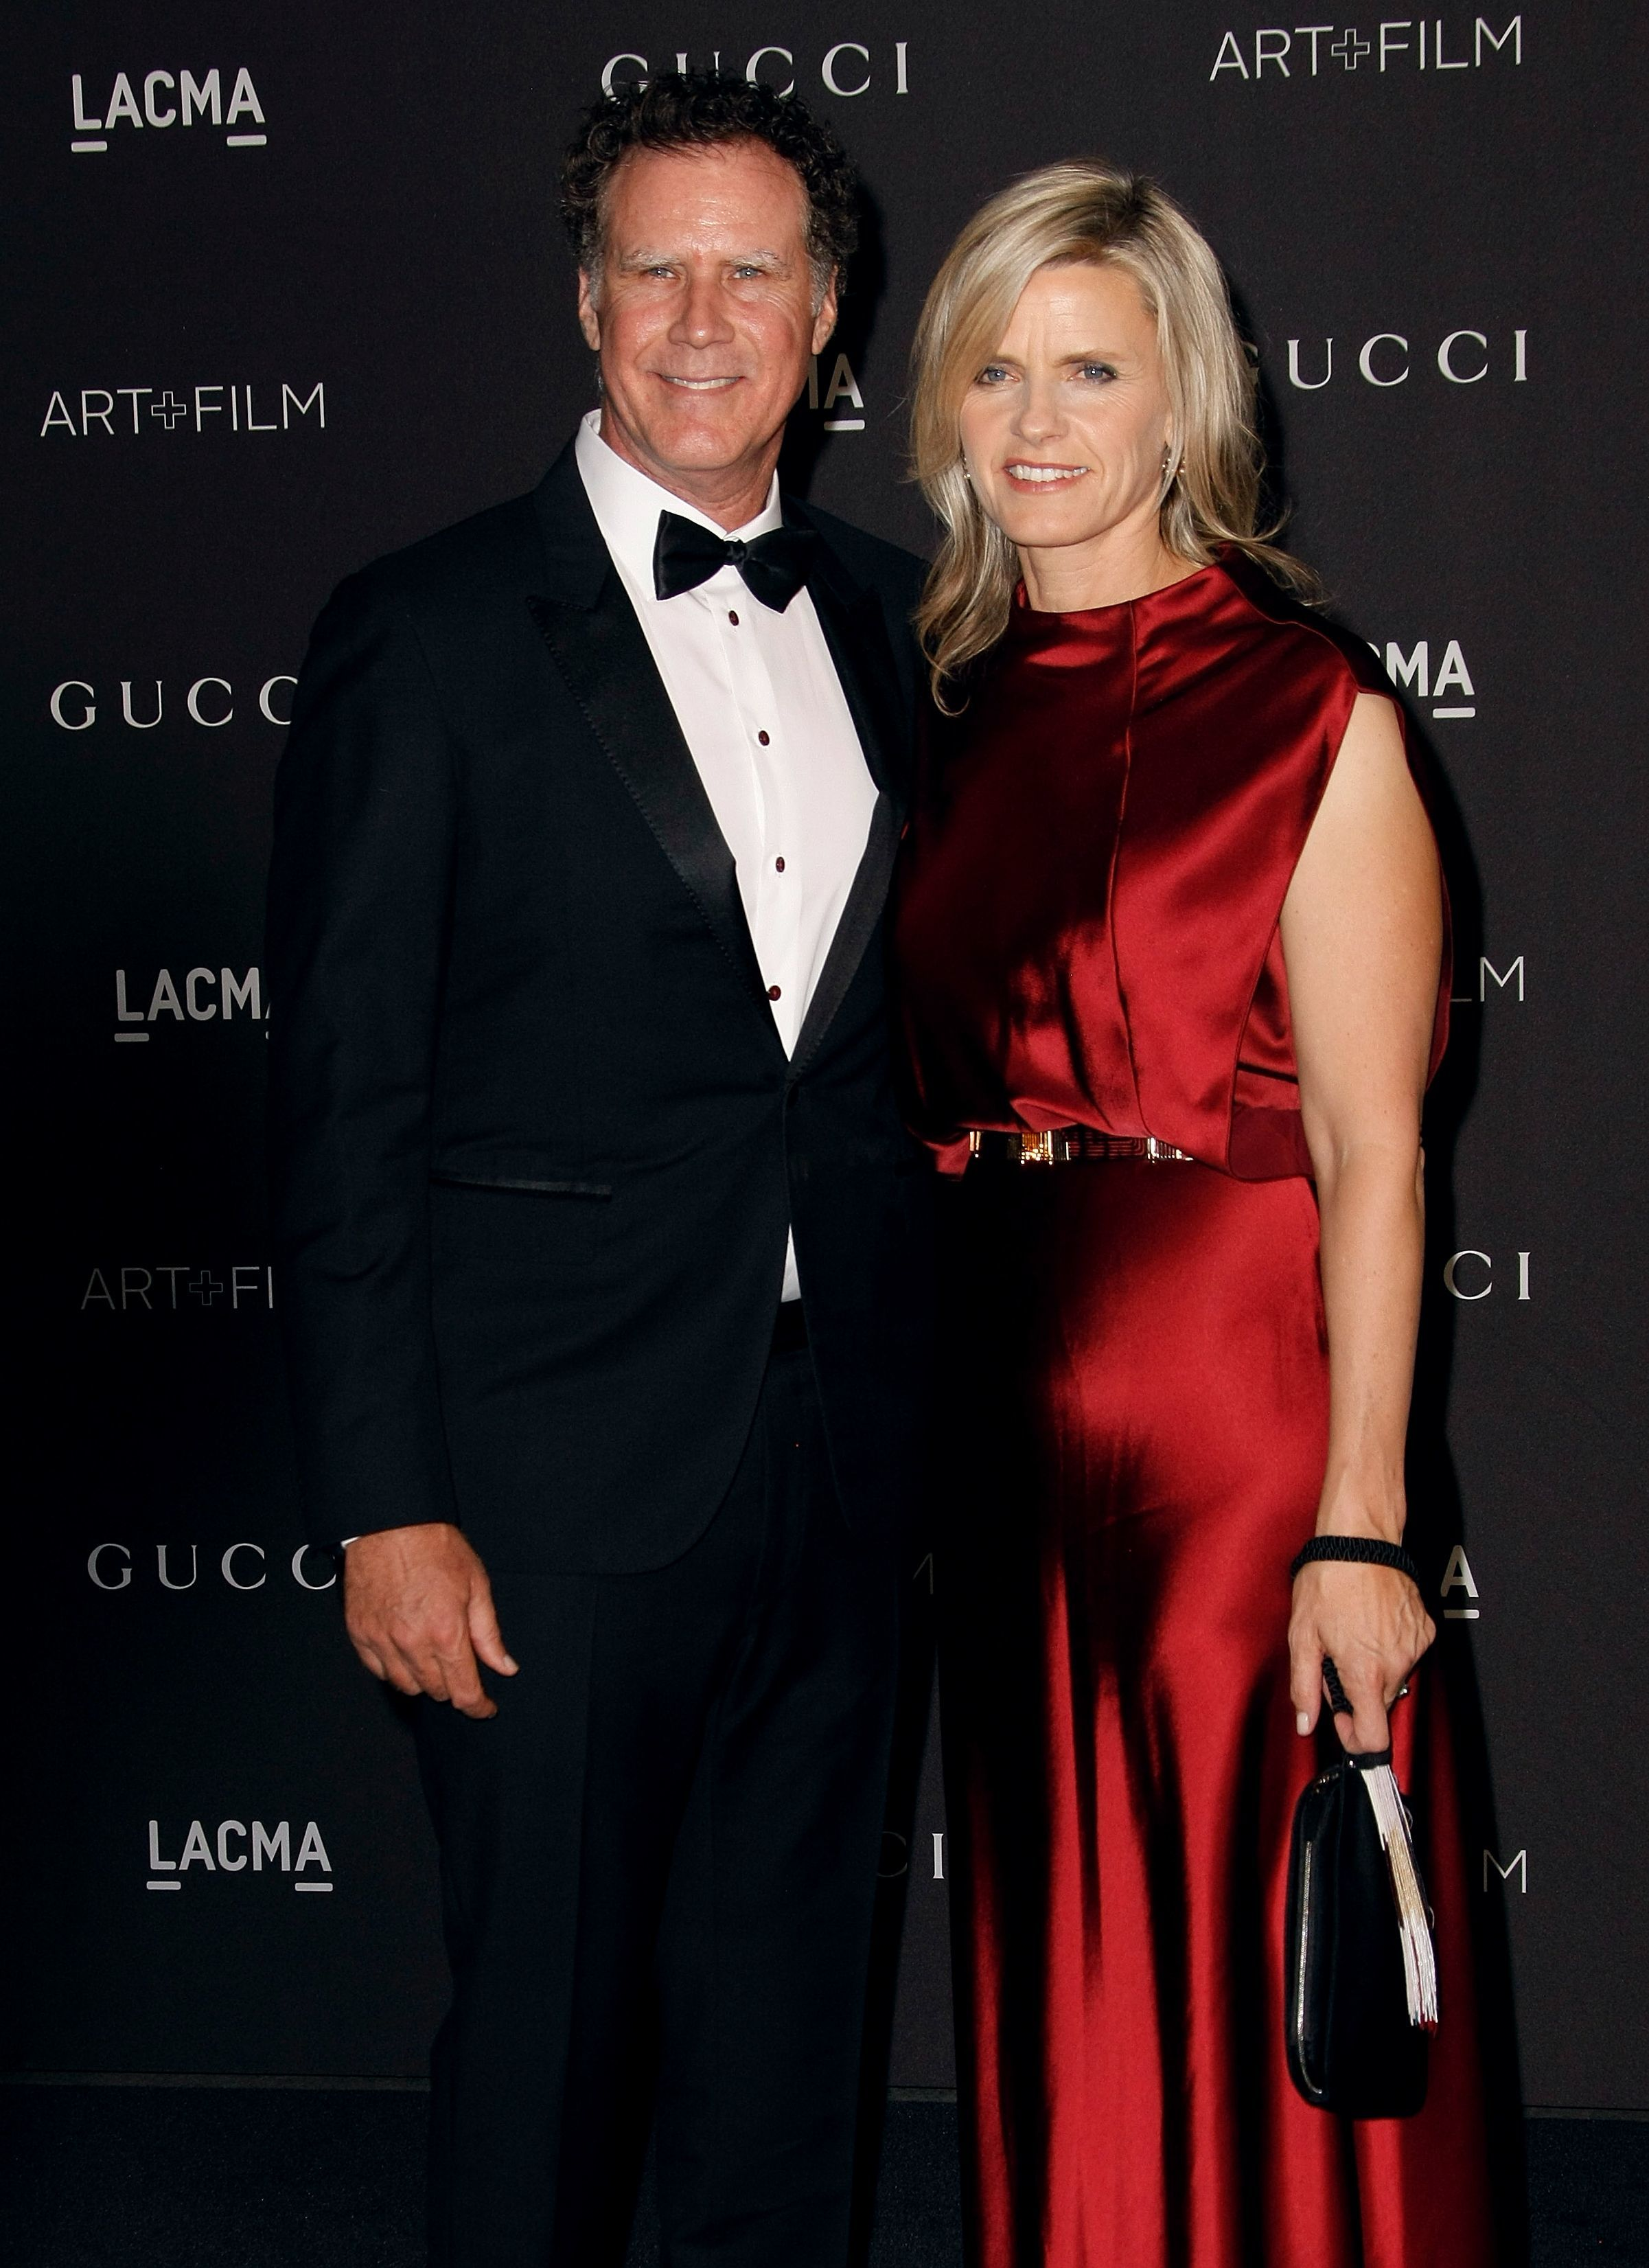 Will Ferrell and wife Viveca Paulin attend the LACMA Art + Film Gala presented by Gucci in Los Angeles on Nov. 3, 2018.